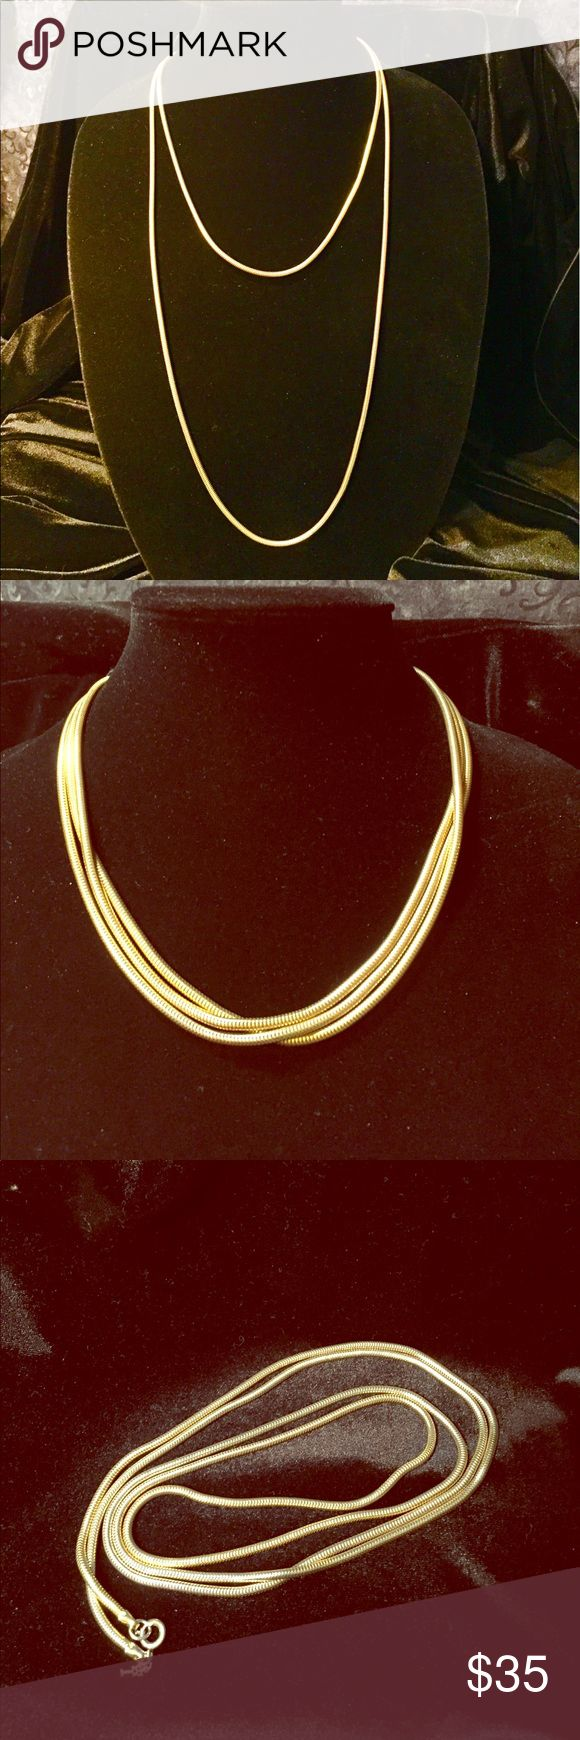 Vintage Trifari chain necklace Vintage Trifari super long snake chain Gold tone necklace  Measures 54 inches in length. Vintage Jewelry Necklaces